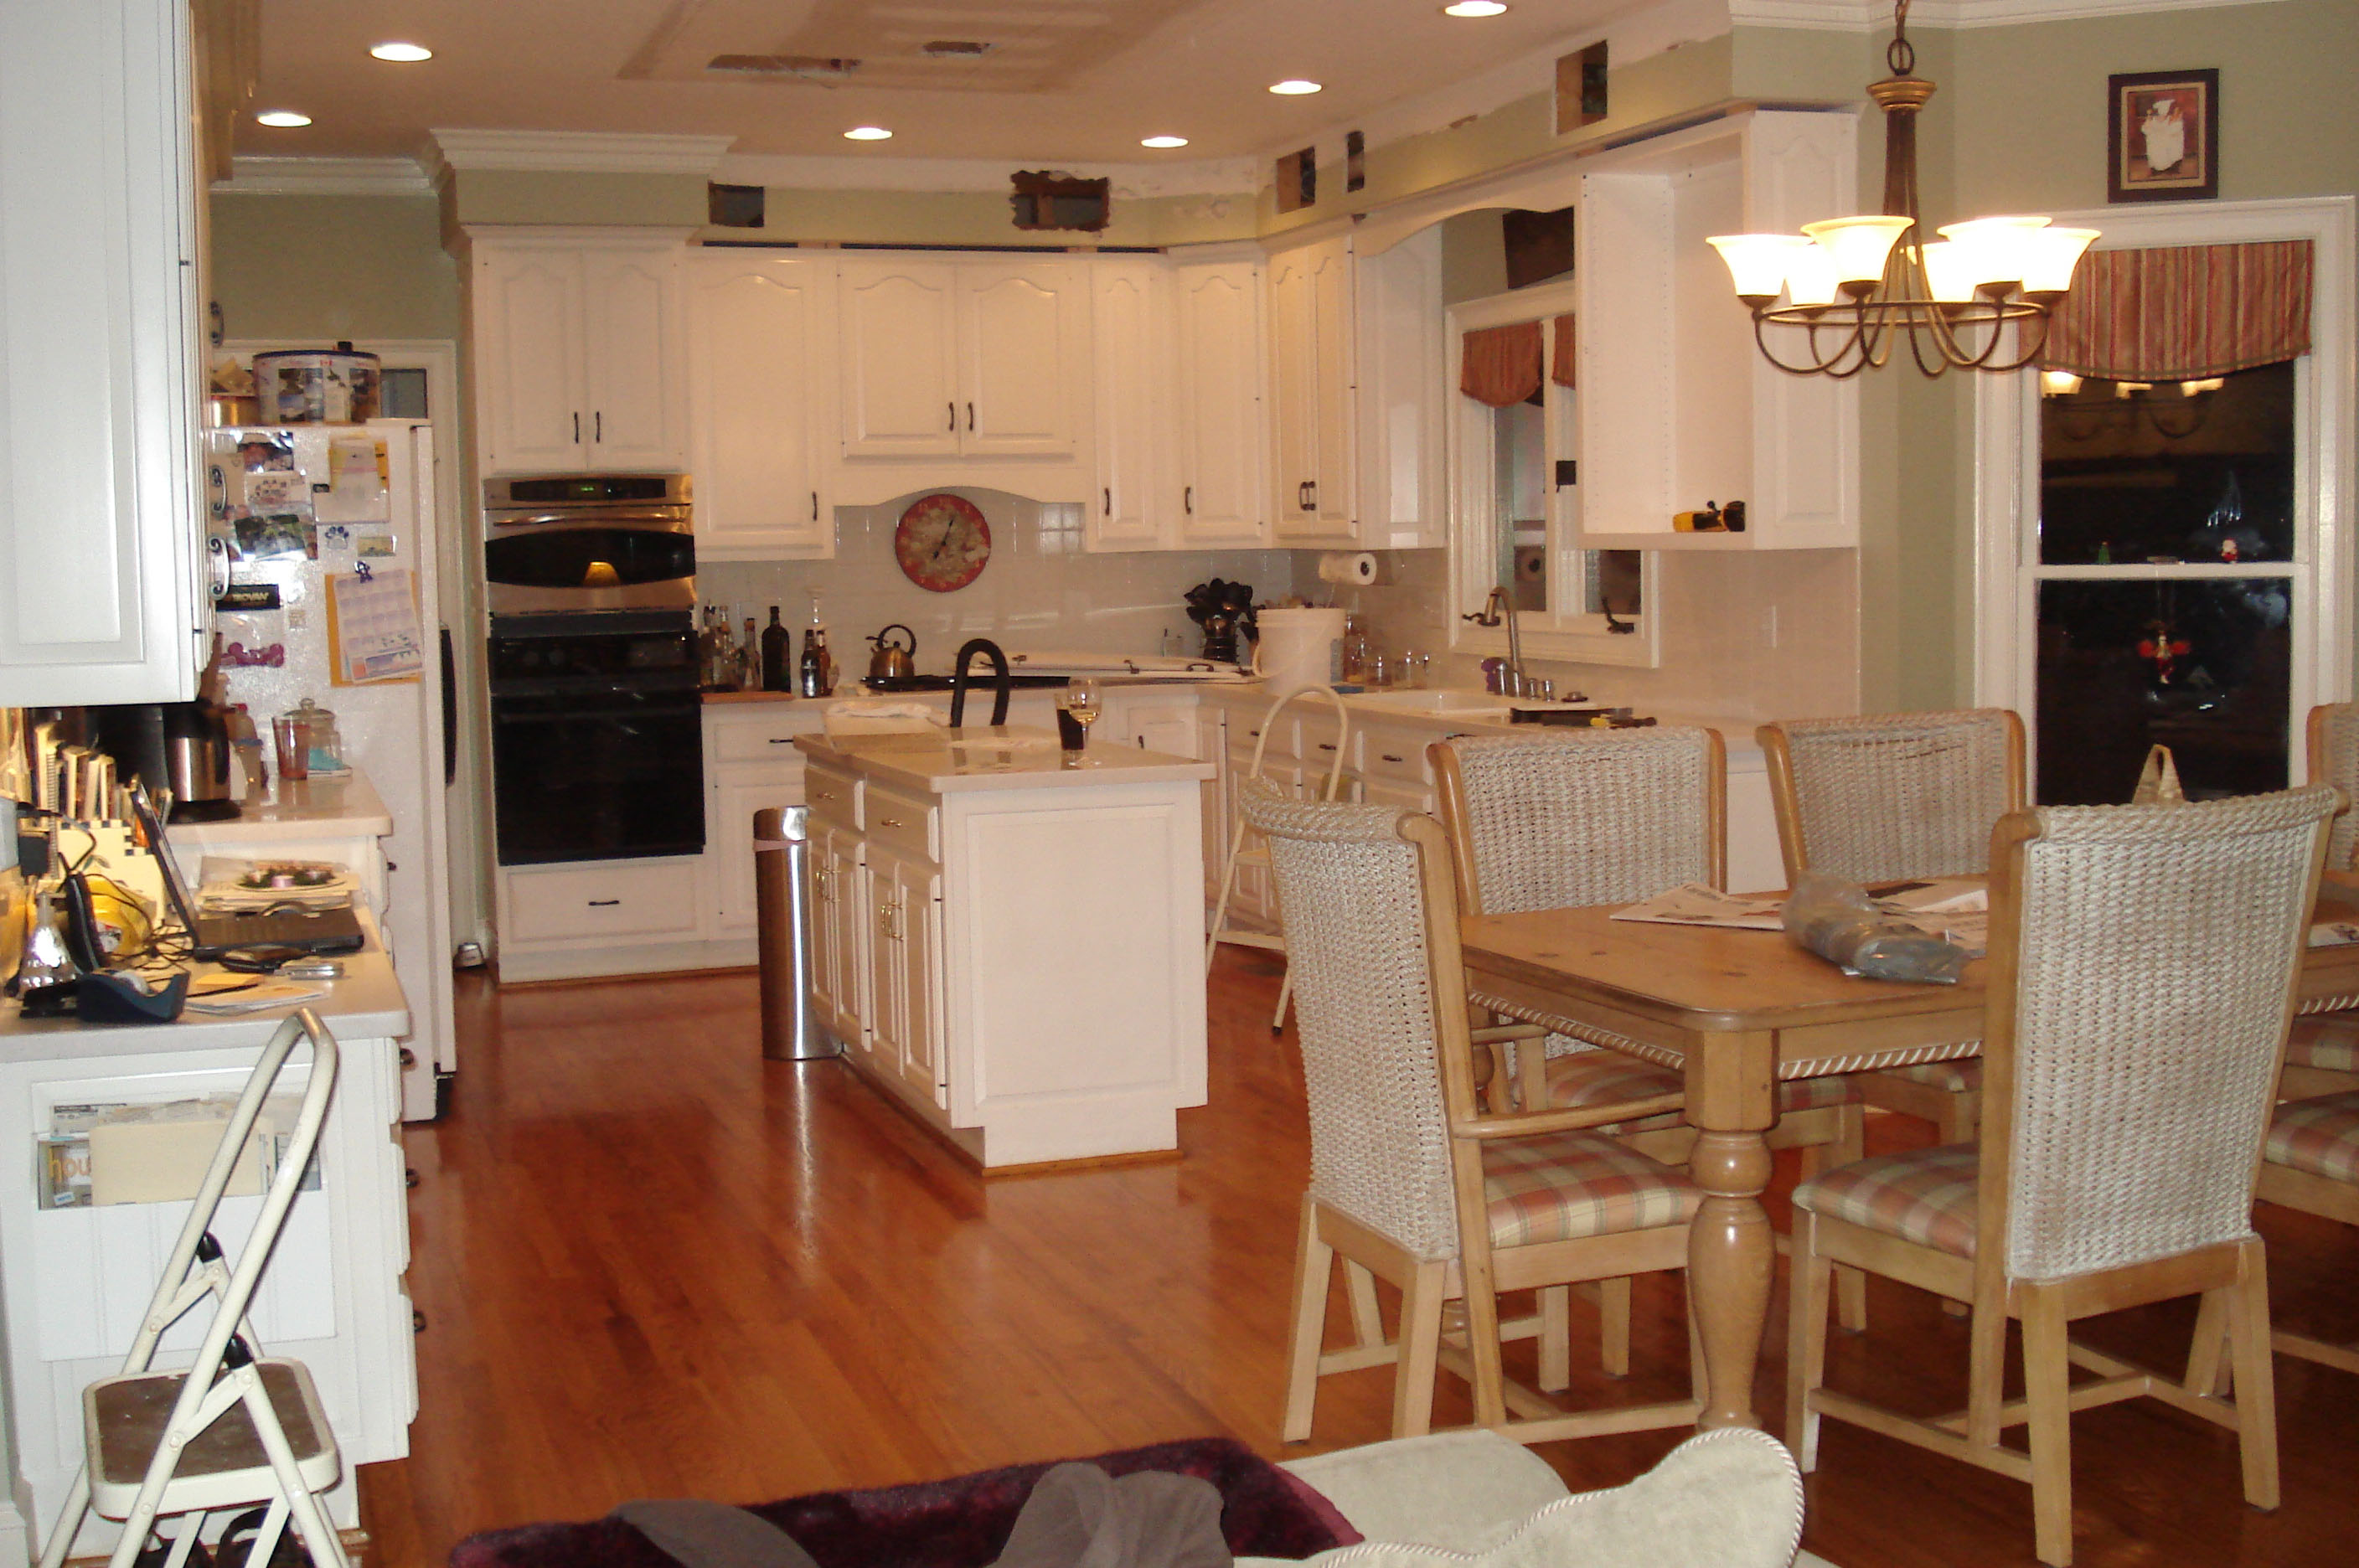 Kitchen Remodel Before Picture Allen David Cabinetry 980 722 9186